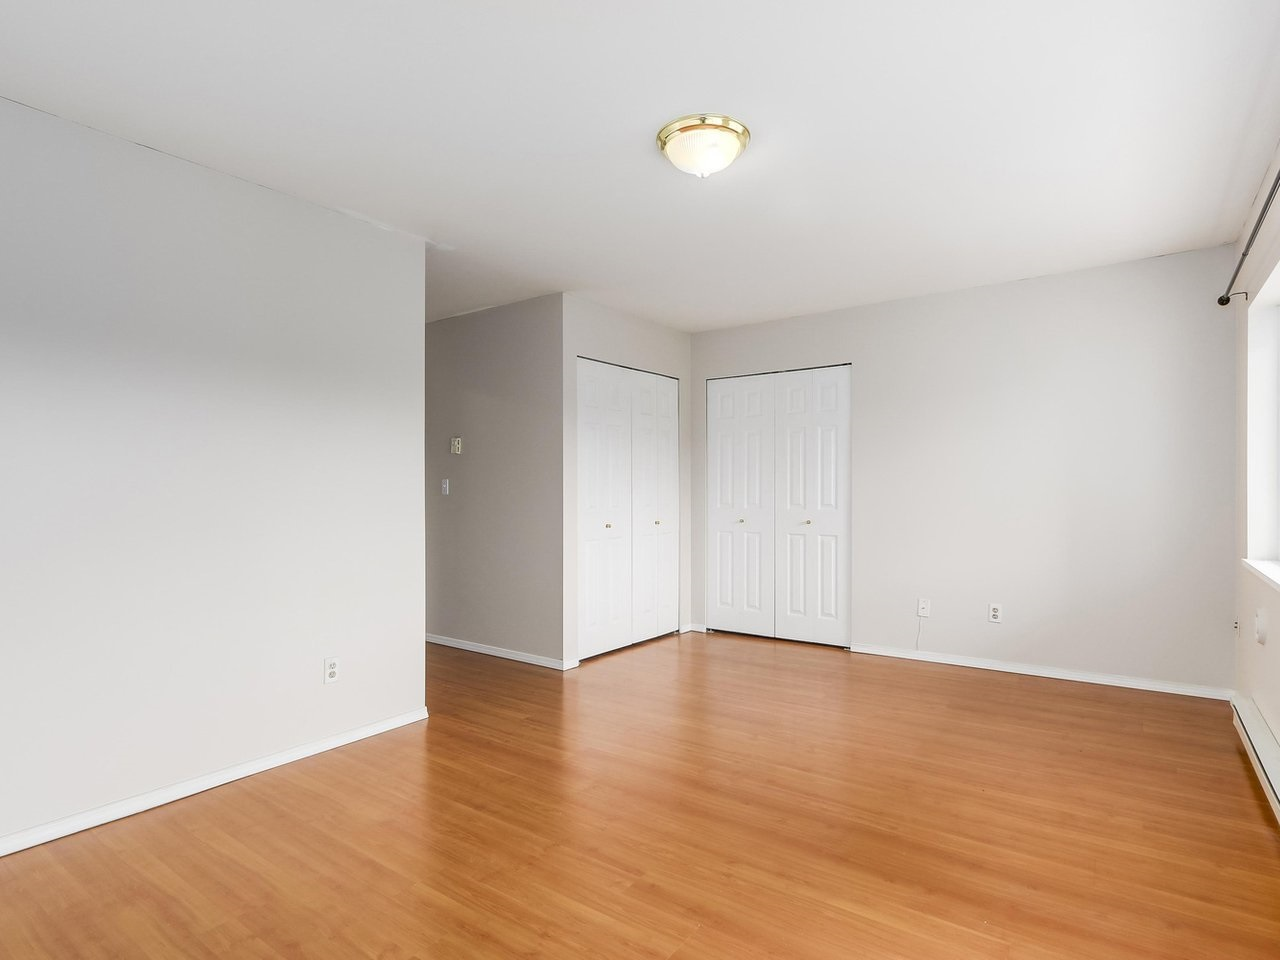 Condo Apartment at 308 13680 84 AVENUE, Unit 308, Surrey, British Columbia. Image 12